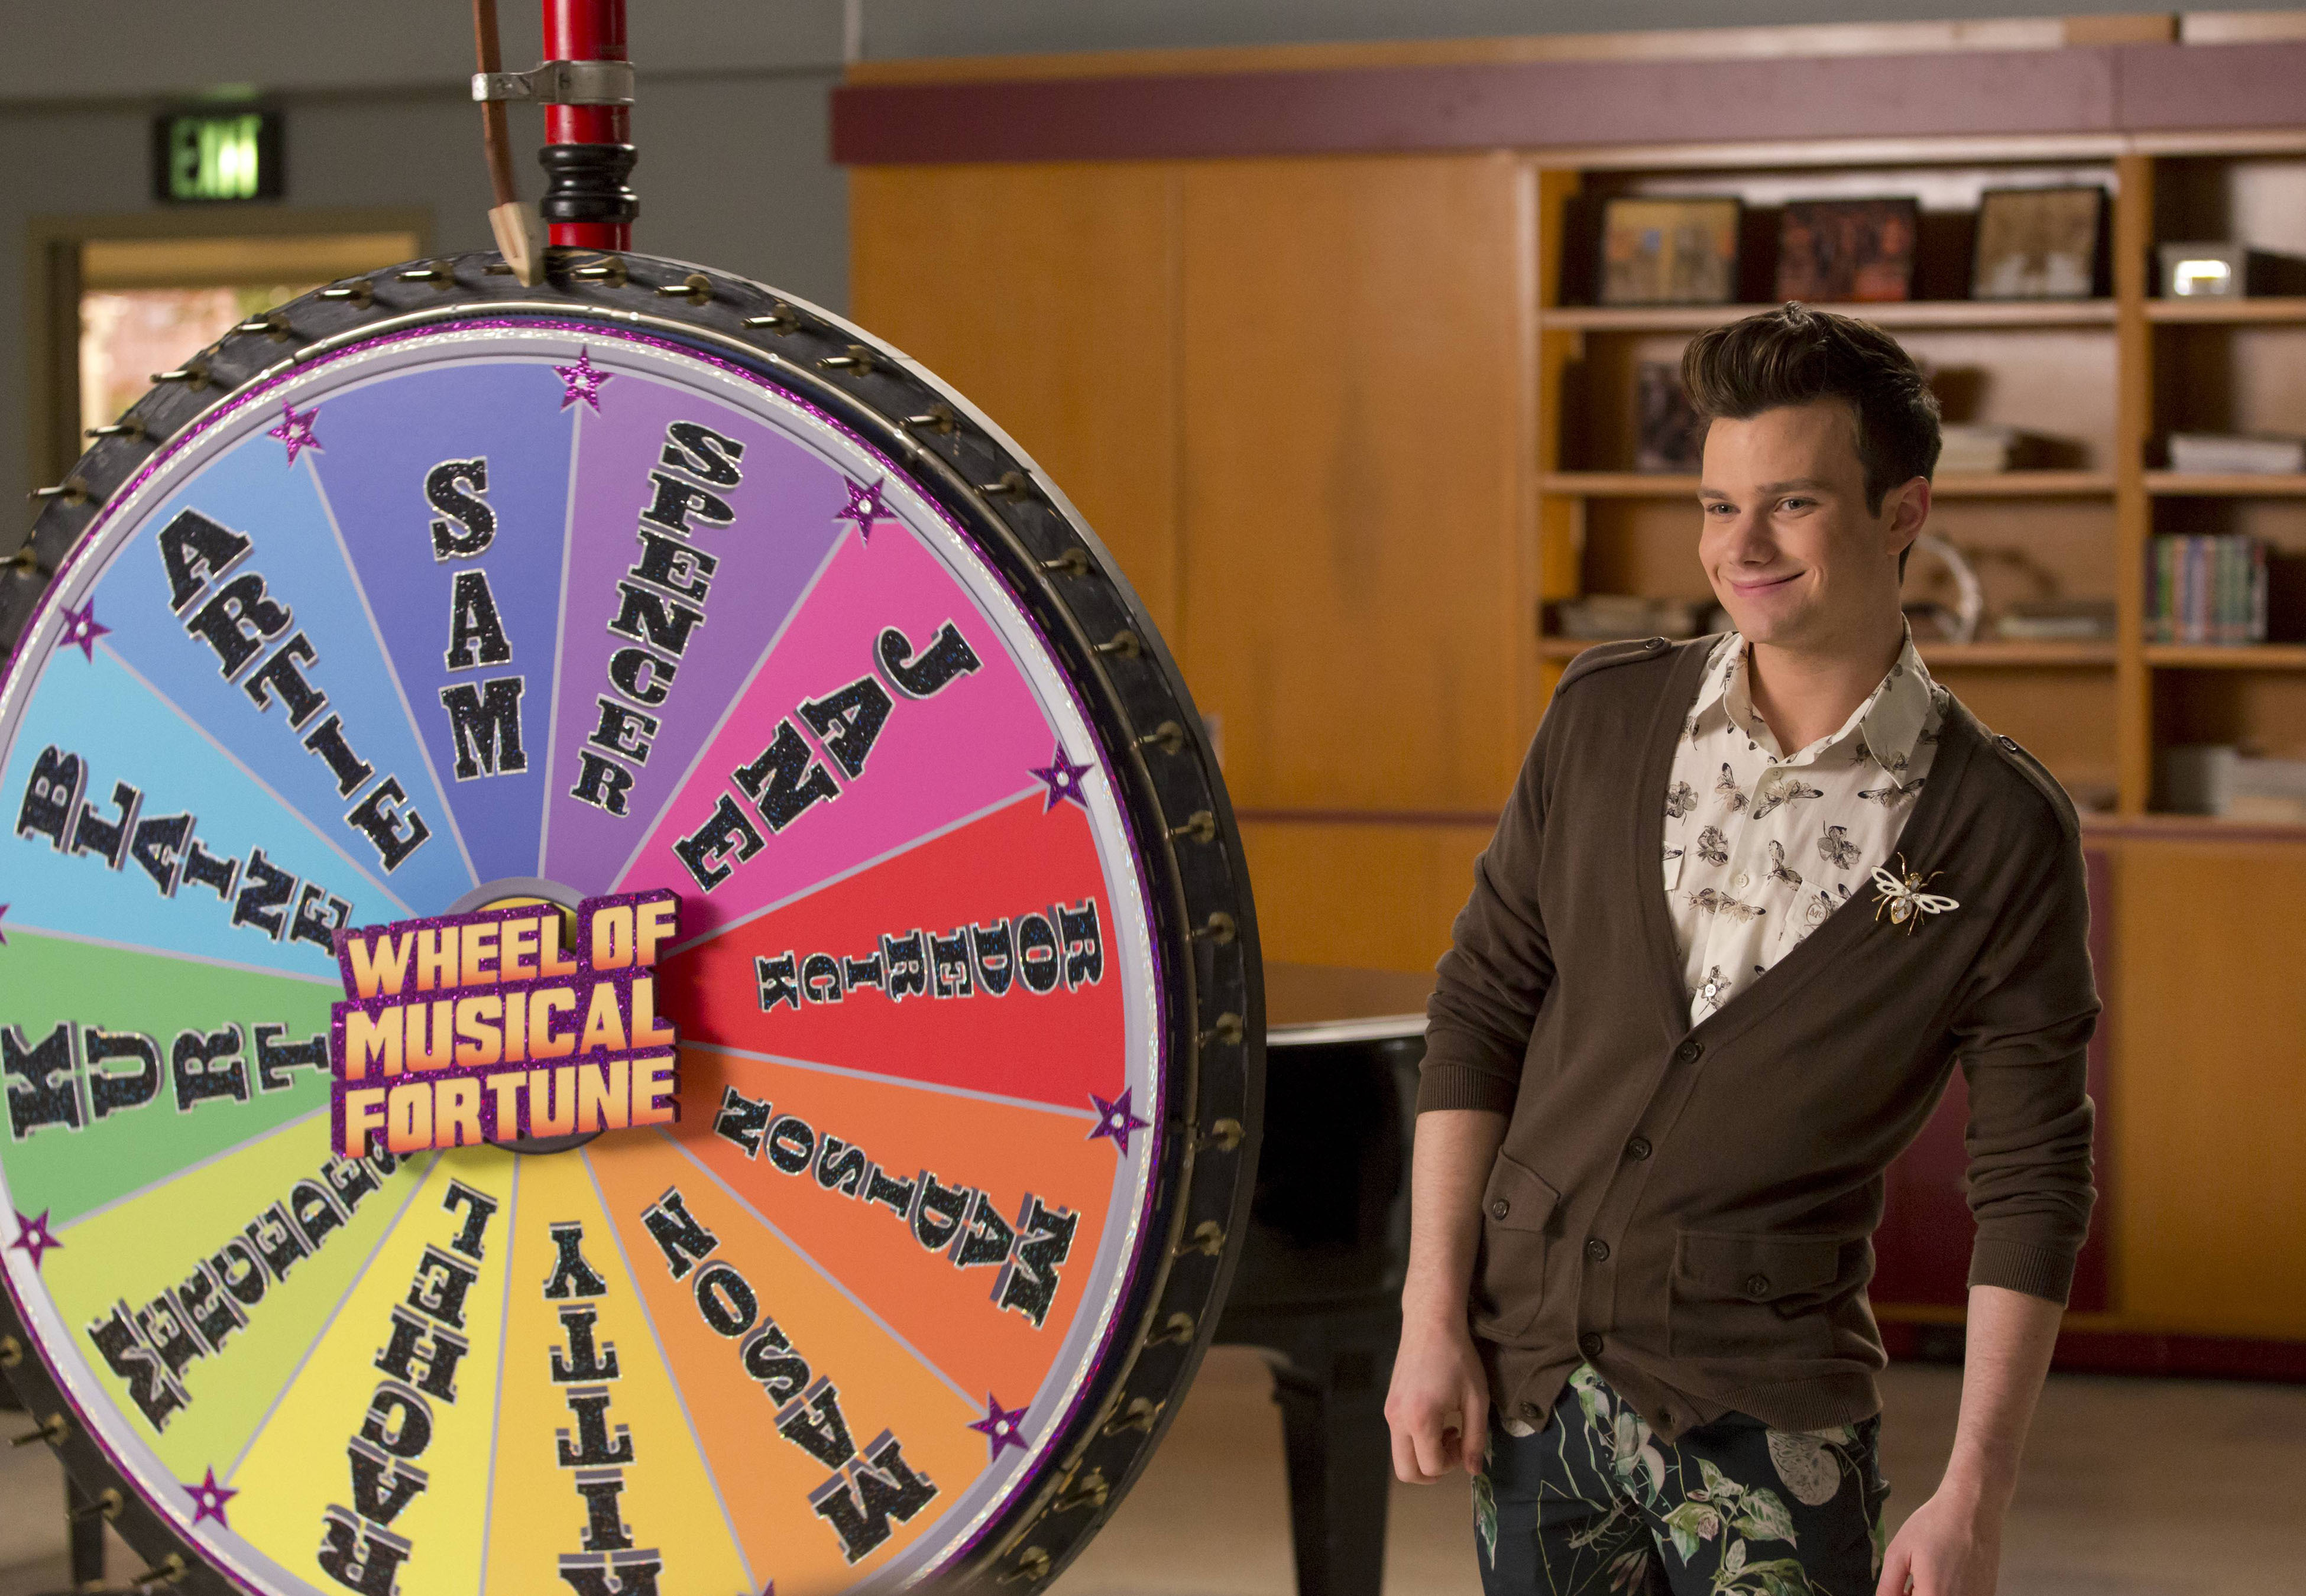 607glee_ep607-sc16_2475_f_hires2